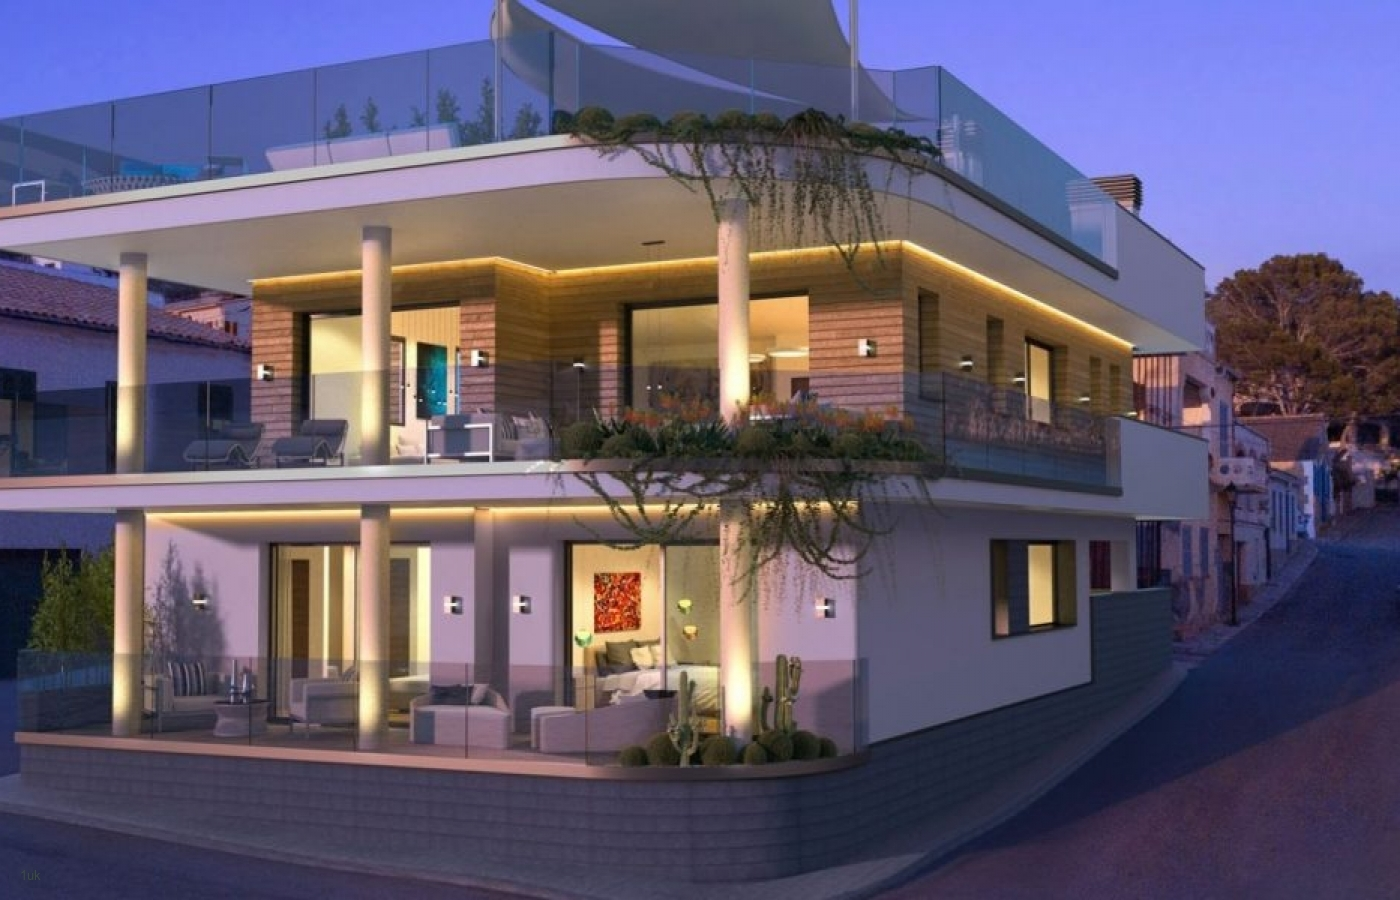 507_view_outside_of_the_property Traditional villas in Spain's Costa Brava: FOR SALE 1 home